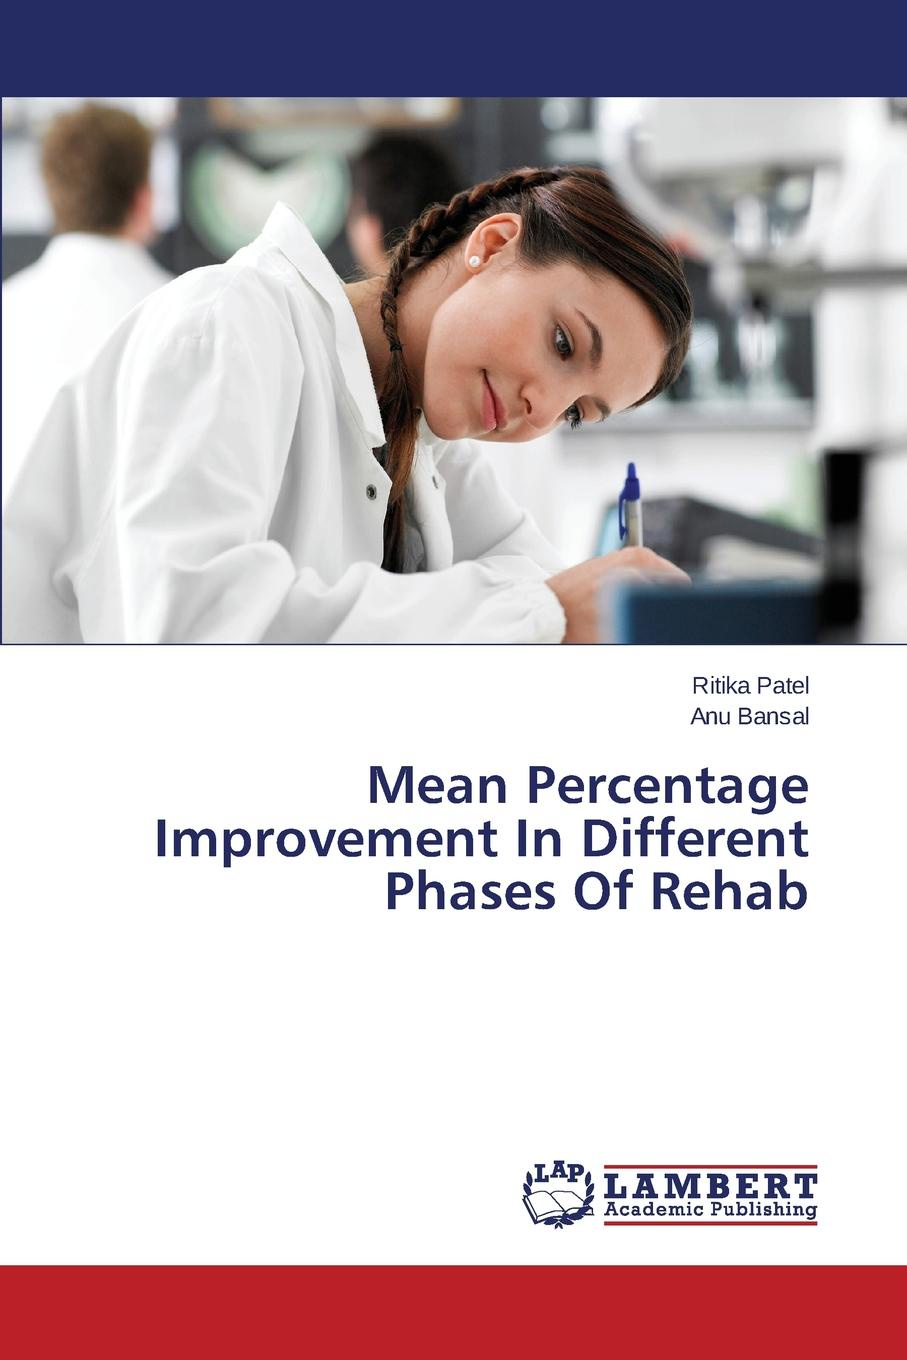 цена Patel Ritika, Bansal Anu Mean Percentage Improvement In Different Phases Of Rehab